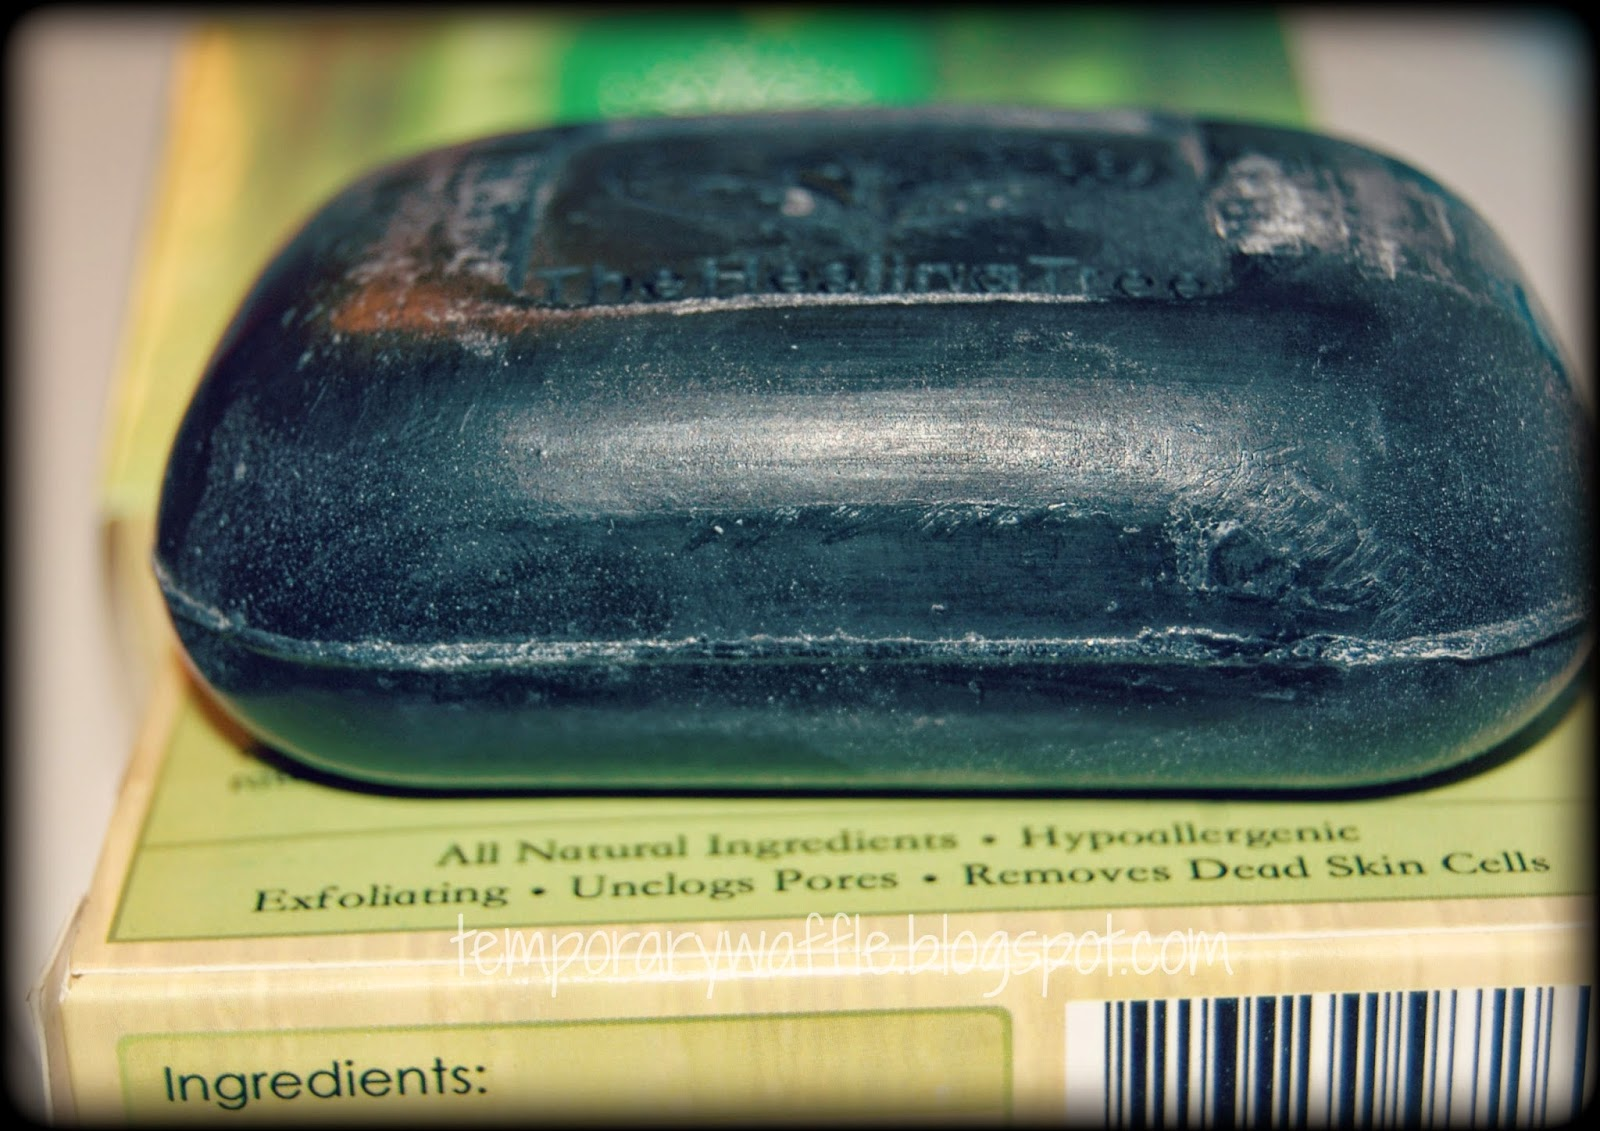 bamboo charcoal as a soap I love this soap i've been wanting to try a natural charcoal product for so long now and this made for a good first experience i am also a big fan of bamboo products in general so that was another selling point for me personally.